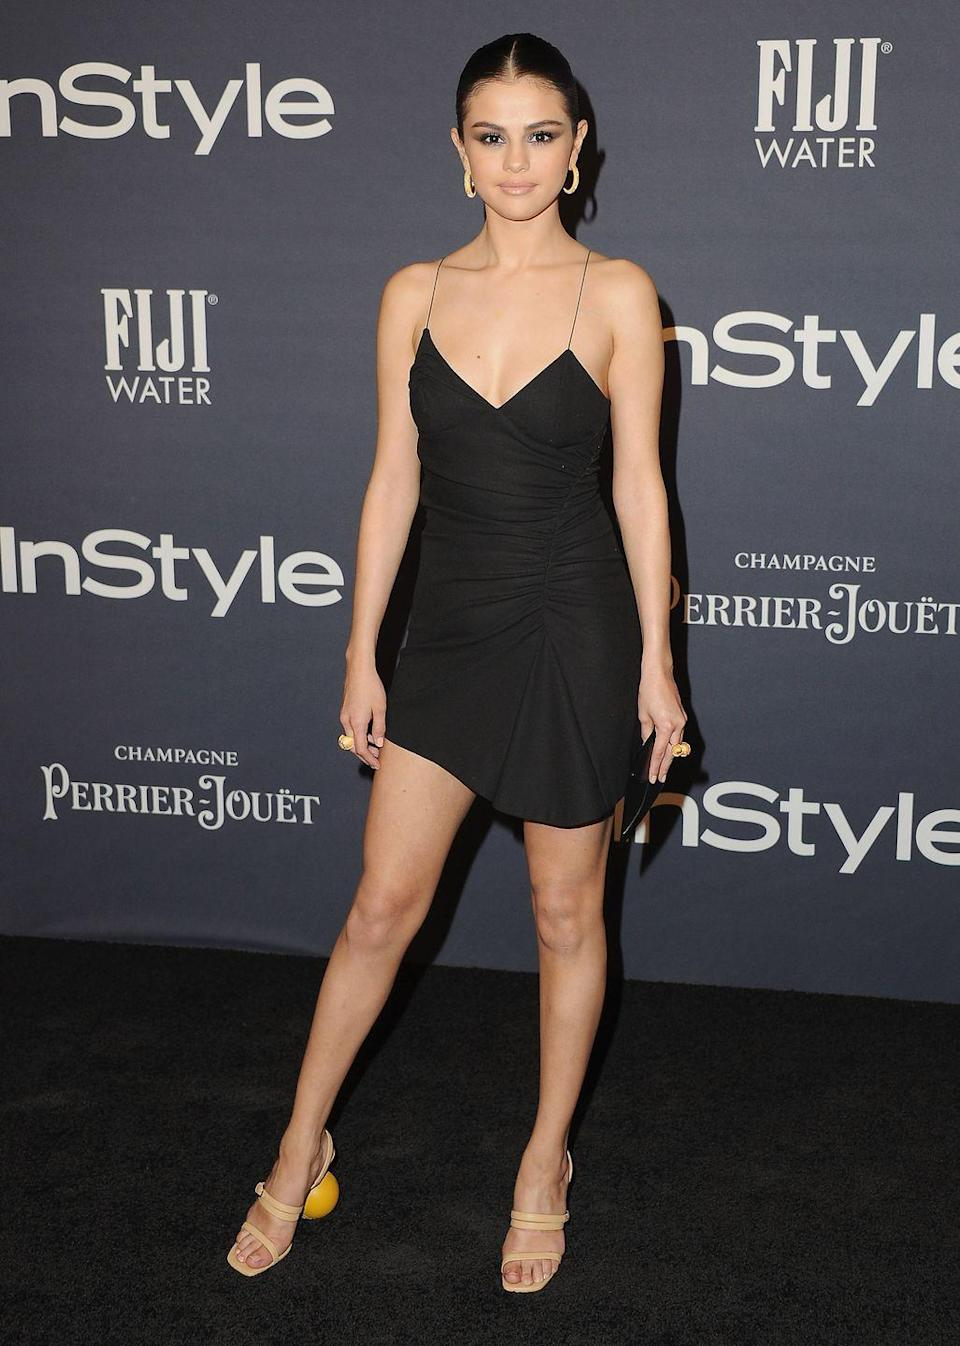 """<p>Selena Gomez dominated the red carpet at the InStyle Awards in a black 90s-inspired strappy dress and Simon <a href=""""http://www.elleuk.com/fashion/celebrity-style/news/a39502/selena-gomez-just-wore-the-ultimate-pair-of-geometric-heels-for-night-out-with-elle-fanning/"""" rel=""""nofollow noopener"""" target=""""_blank"""" data-ylk=""""slk:Jacquemus-designed block heels"""" class=""""link rapid-noclick-resp"""">Jacquemus-designed block heels</a>, October 2017</p>"""